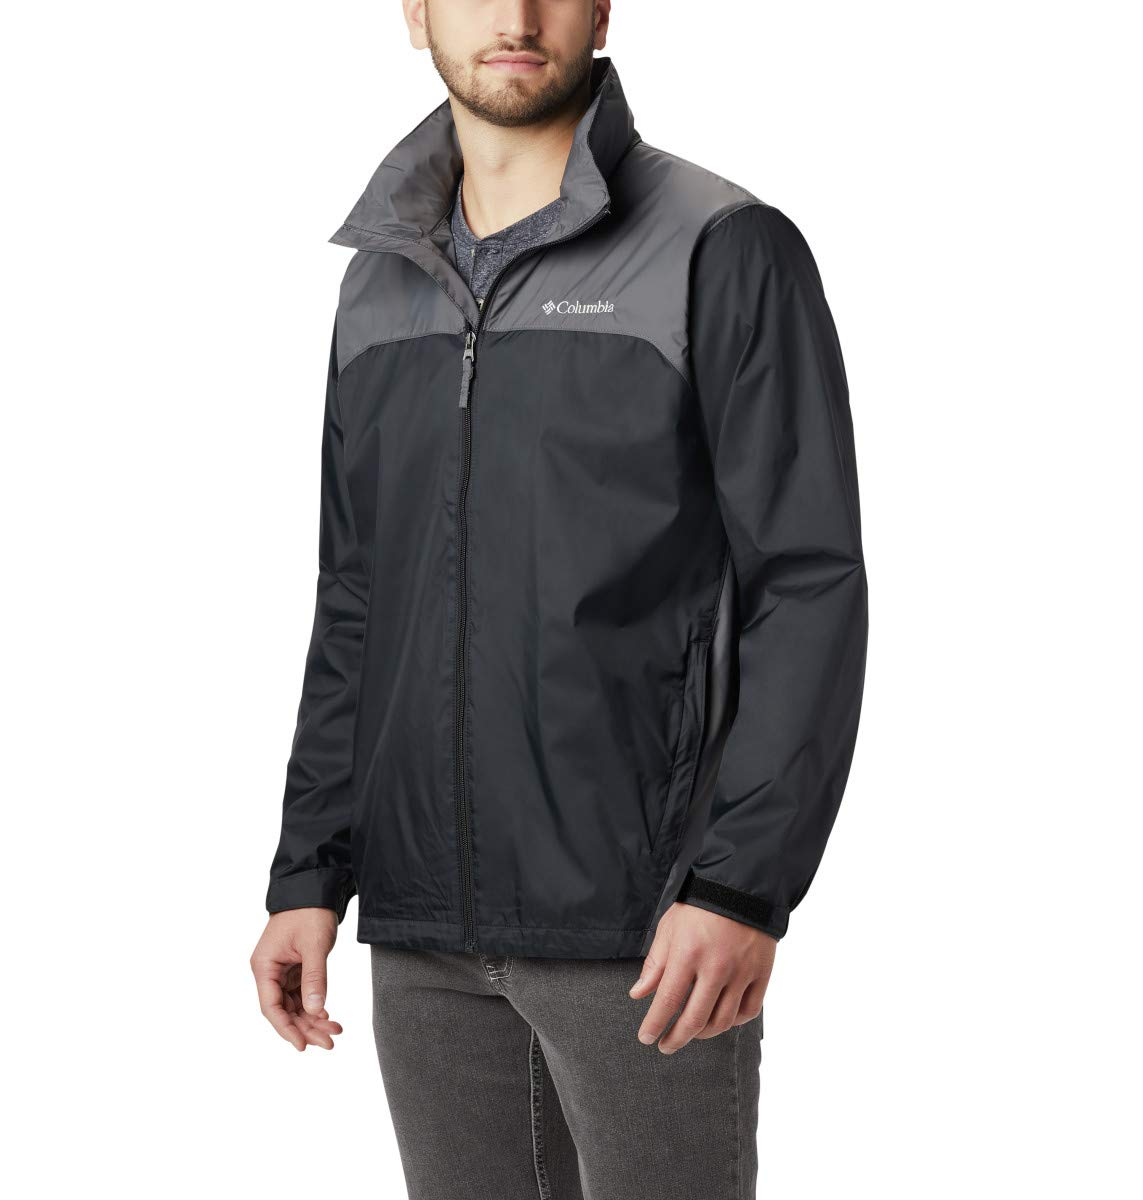 Columbia Men's Glennaker Lake Packable Rain Jacket, Black/Grill, Small by Columbia